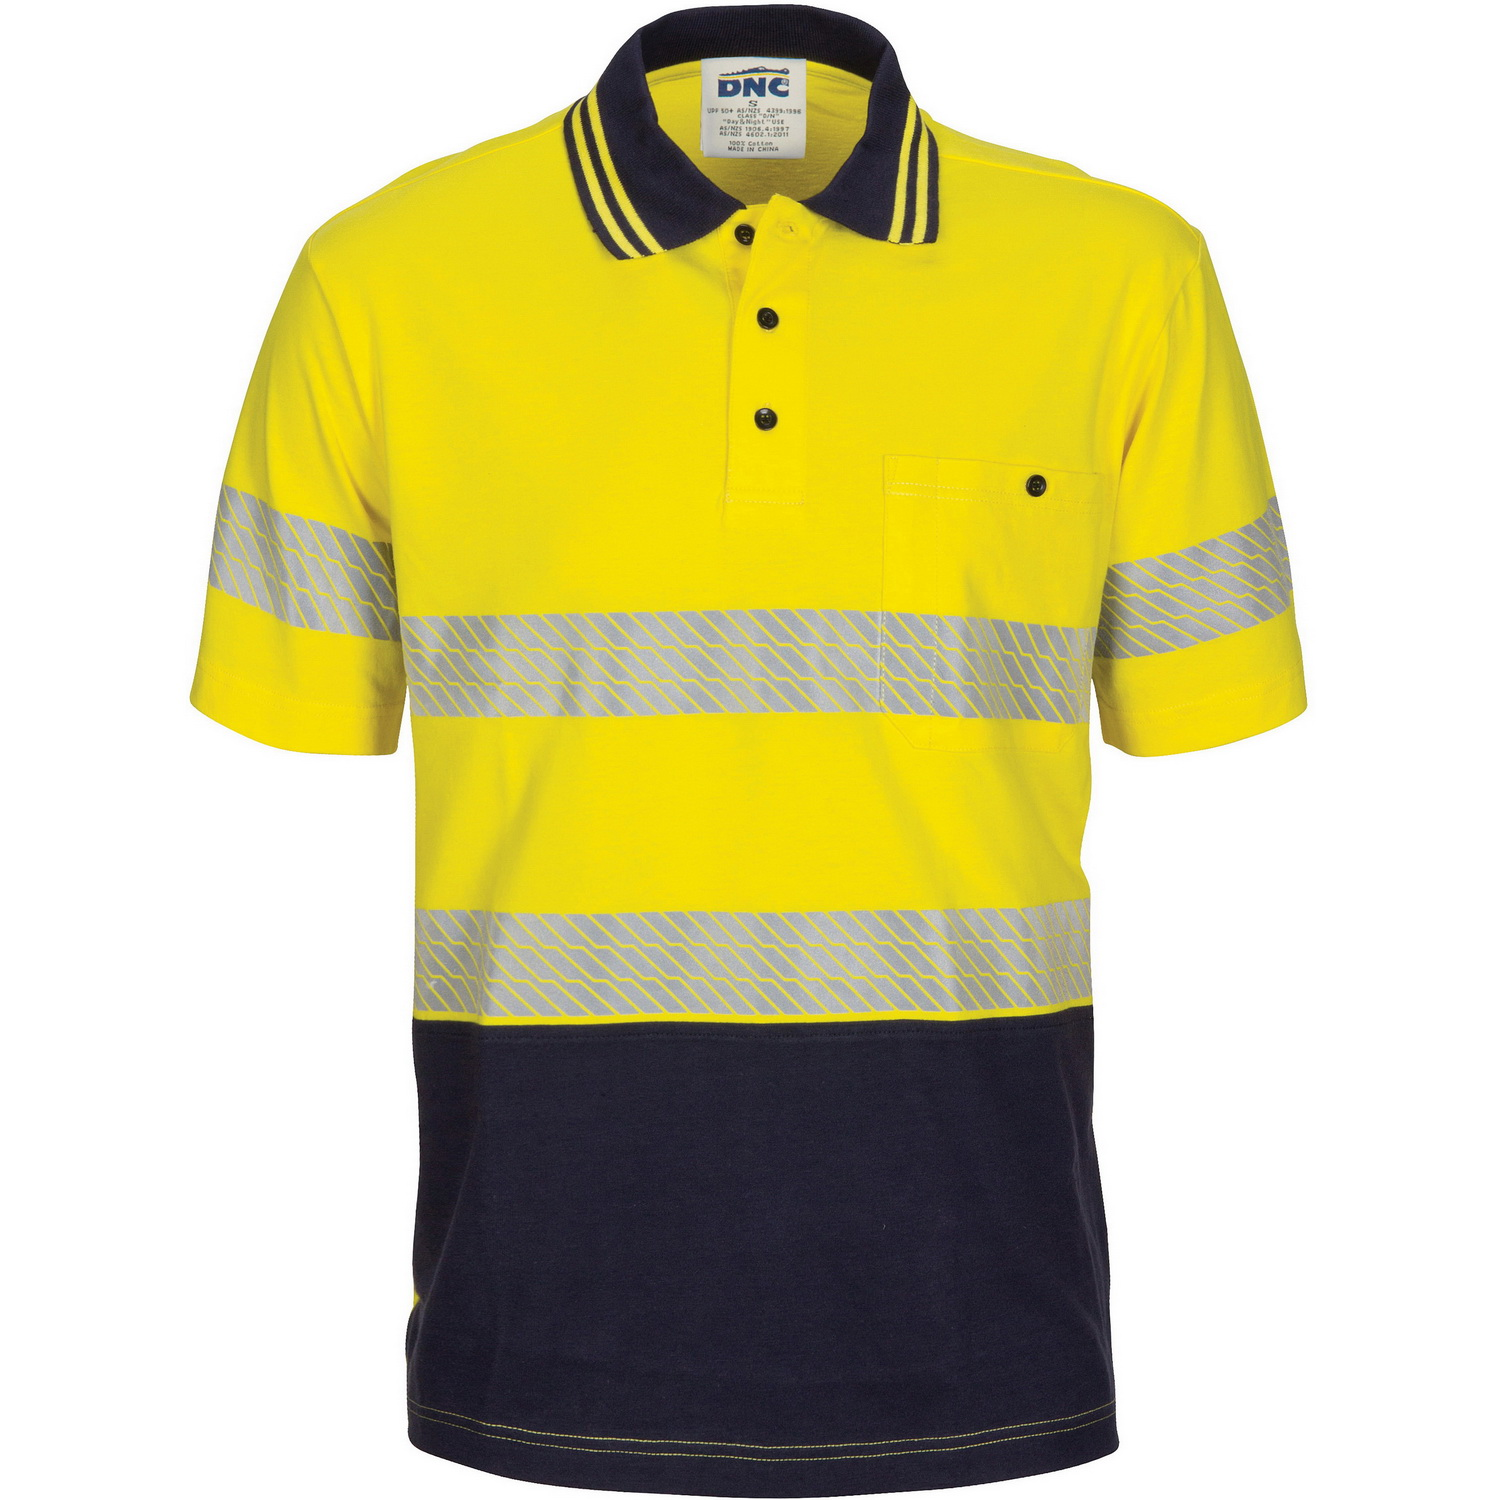 52213ce3 Product Display - DNC Workwear - workwear, work wear, clothing ...